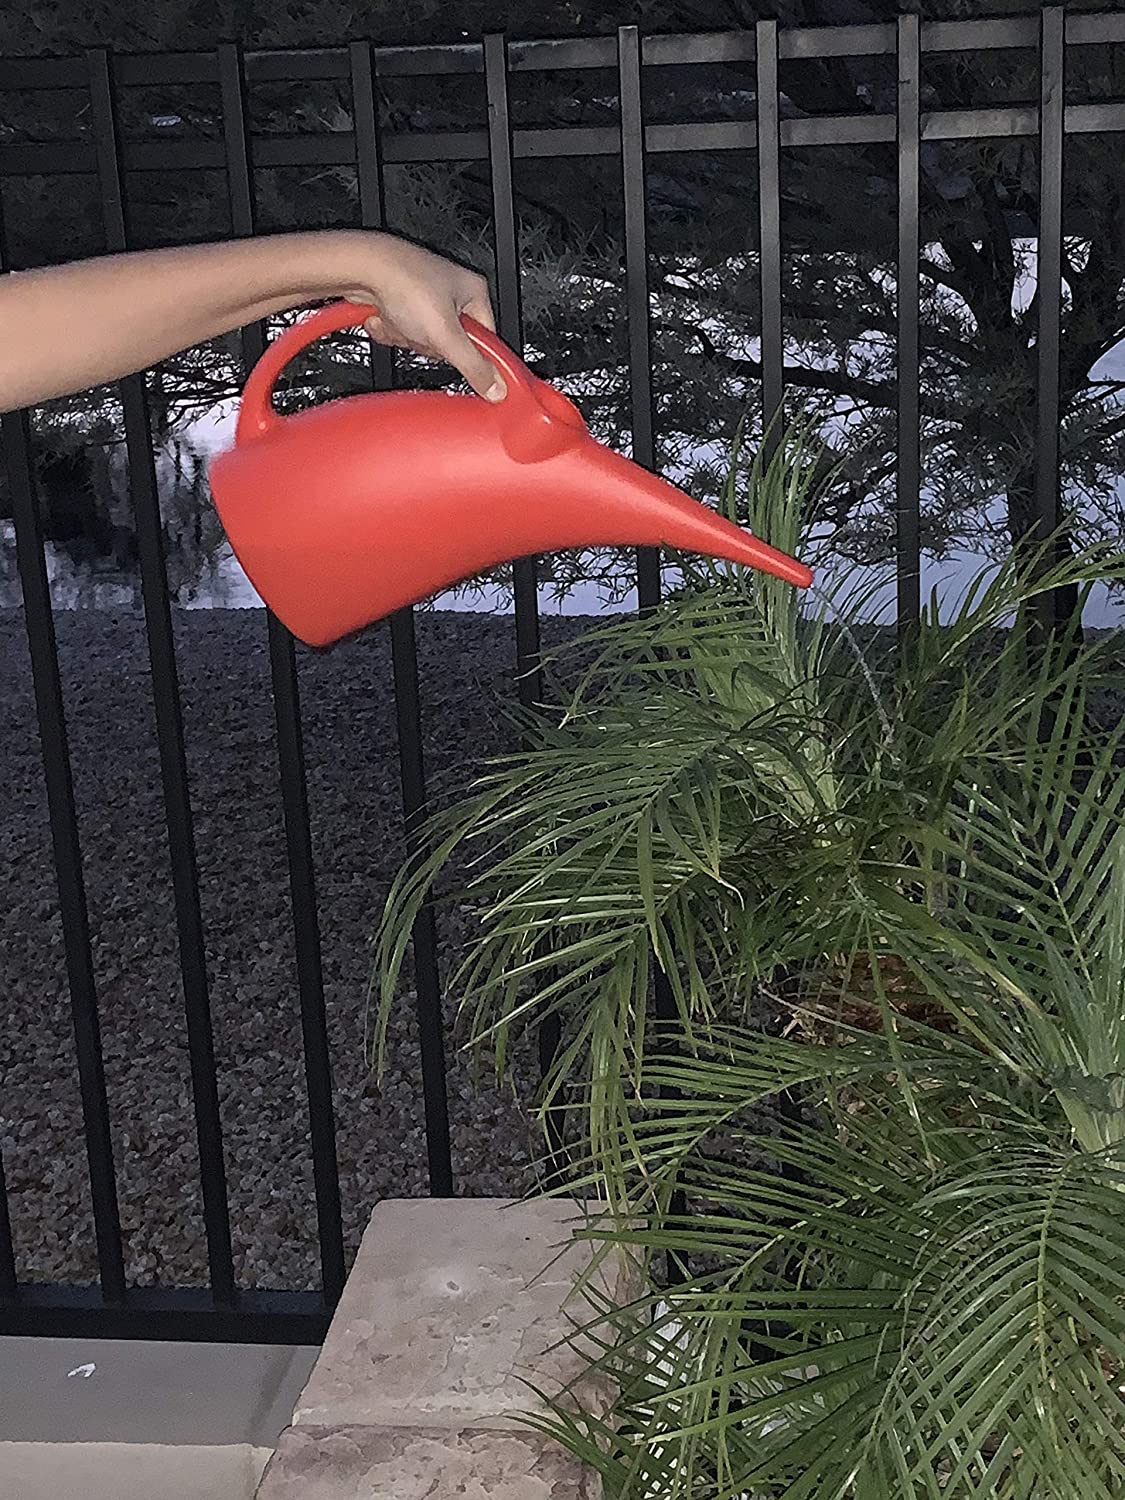 Kool Products Watering Can Indoor Plastic Watering Cans Mini Plant Watering Cans 1 Pack Small Indoor Watering Cans for House Plants 1//2 Gallon Plant Watering Can BPA Free Pink